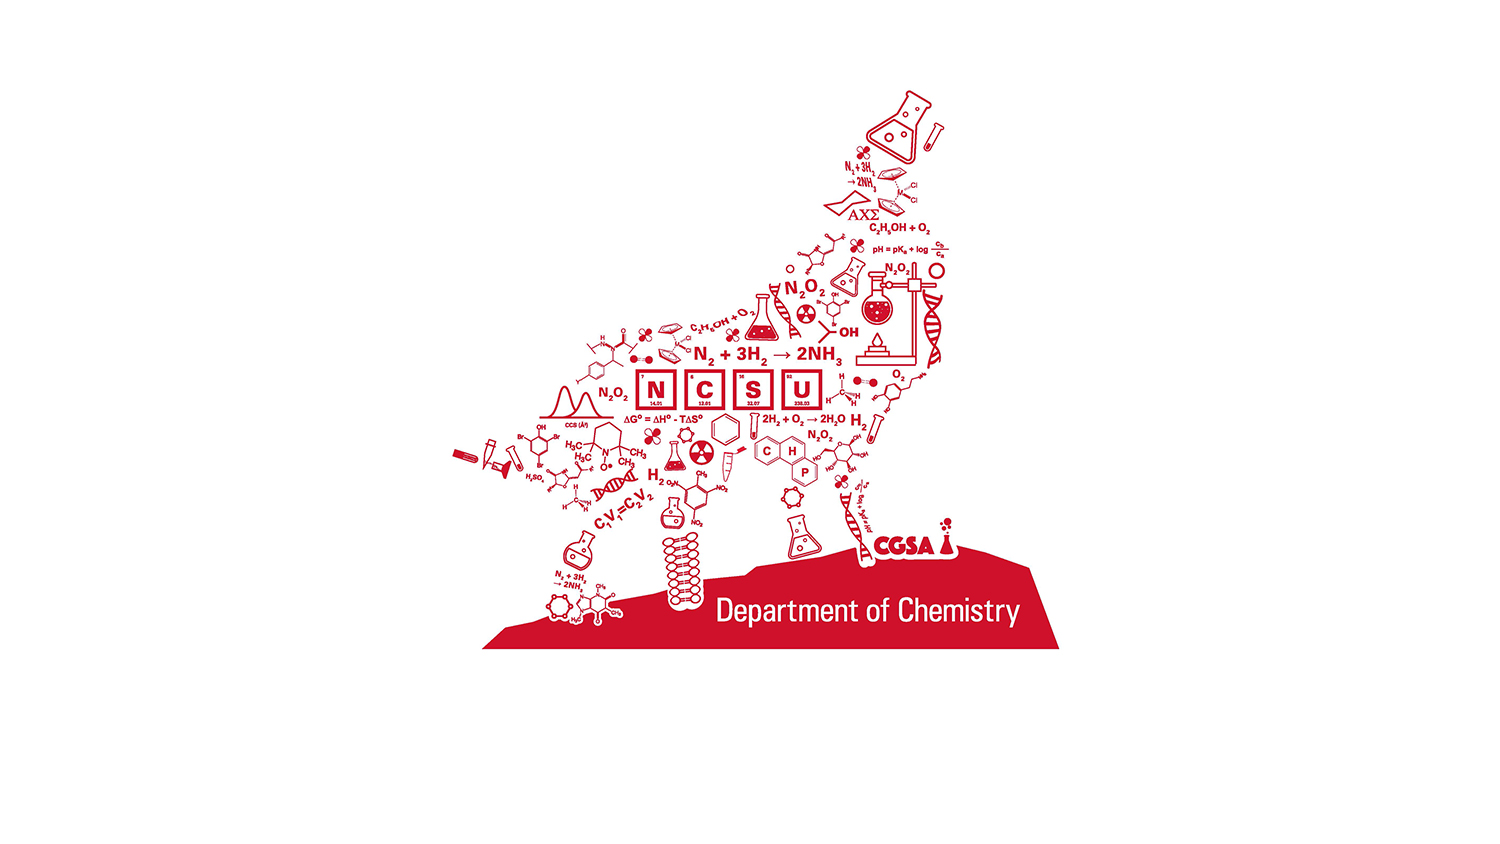 Chemistry Wolf Graphic in Red made up of Chemistry symbols